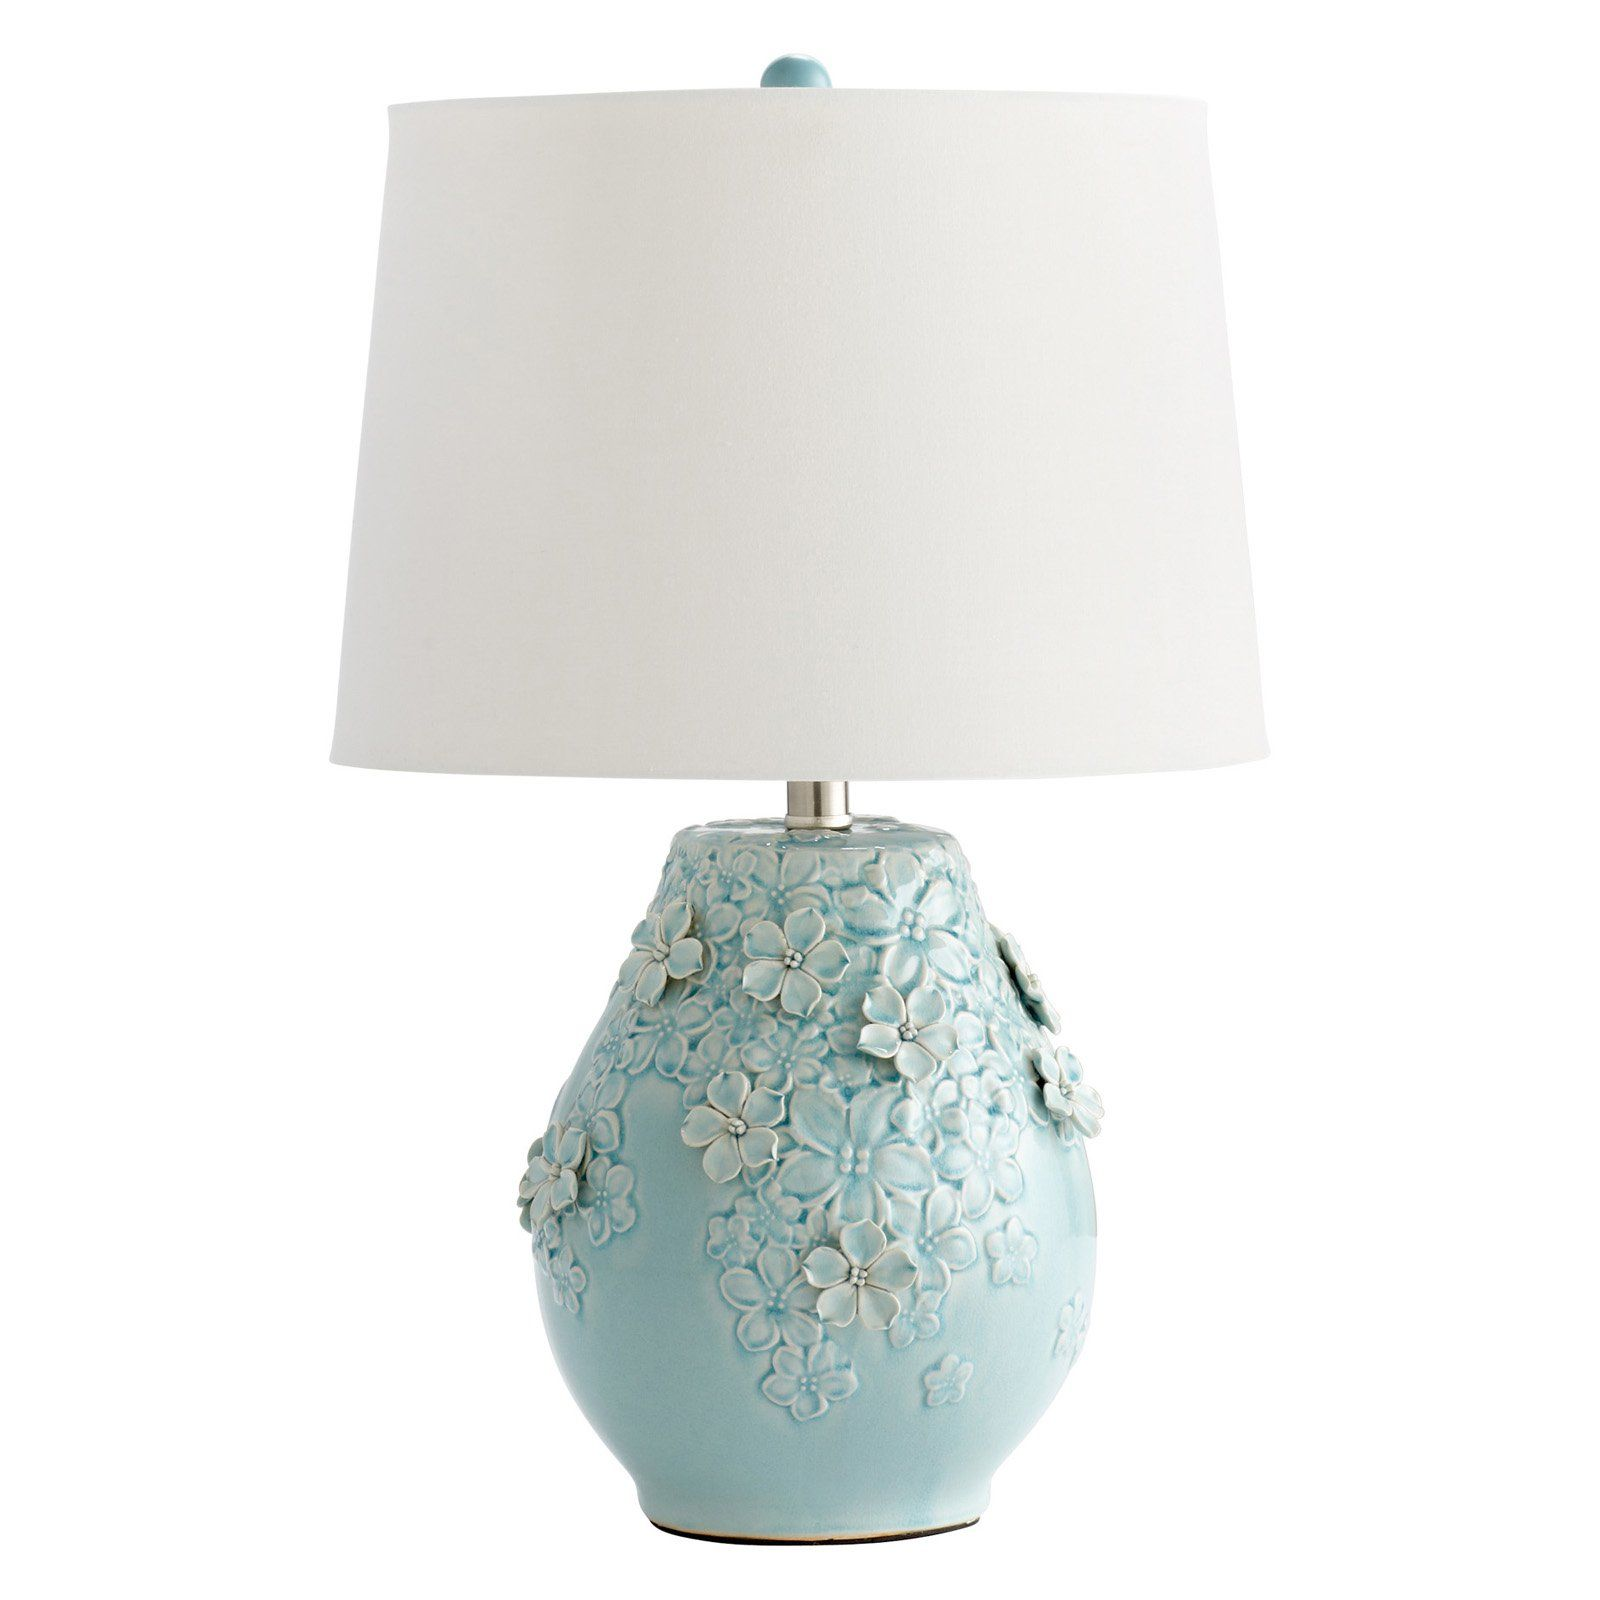 Cyan Design Eire Table Lamp Blue | Table lamp, Vase table